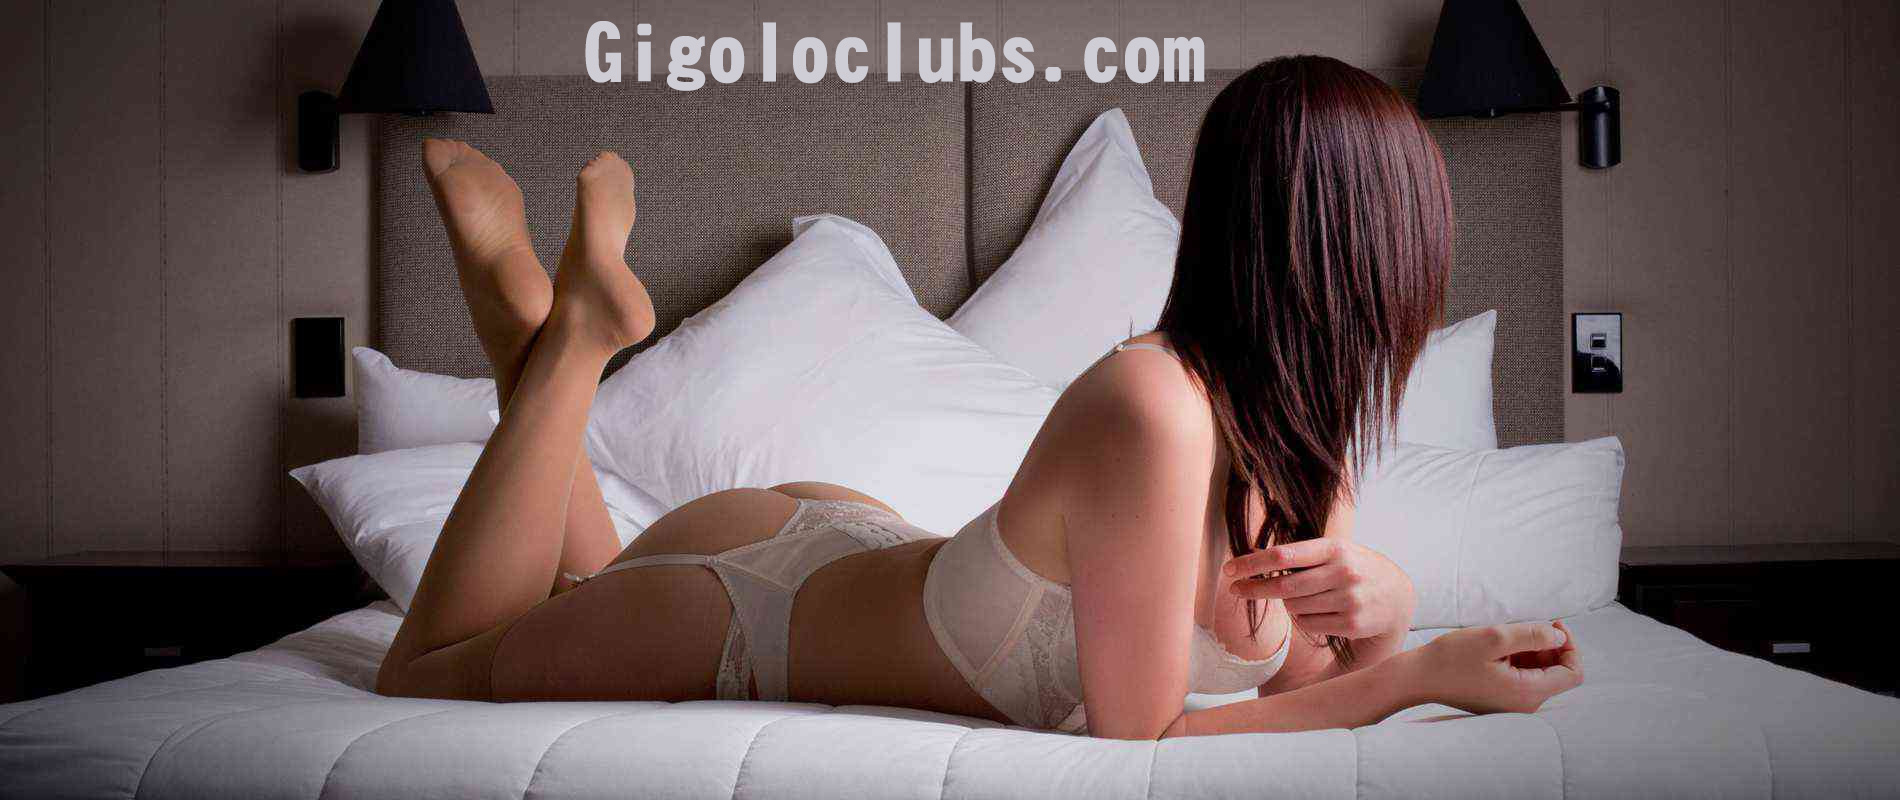 Female Escort, Female Escort Services, Female Escort Services India, Female Escort in Rajasthan, Delhi Female Escort, Female Escort in Gurgaon, Female Escorts Services in Delhi, Female Escort in Rajasthan, Female Escort Services Delhi, Female Escort in Gurgaon, Female Escort Delhi NCR, Rajasthan Female Escort Services, Female Escort Delhi, Female Escort Rajasthan, Female Escort Gurgaon, Female Escorts in Delhi, Female Escorts in Rajasthan, Gurgaon Female Escort Services, Female Escort in Gurgaon, Gurgaon Female Escort, Female Escort in New Delhi, Female Escort in Delhi, Rajasthan Female Escort